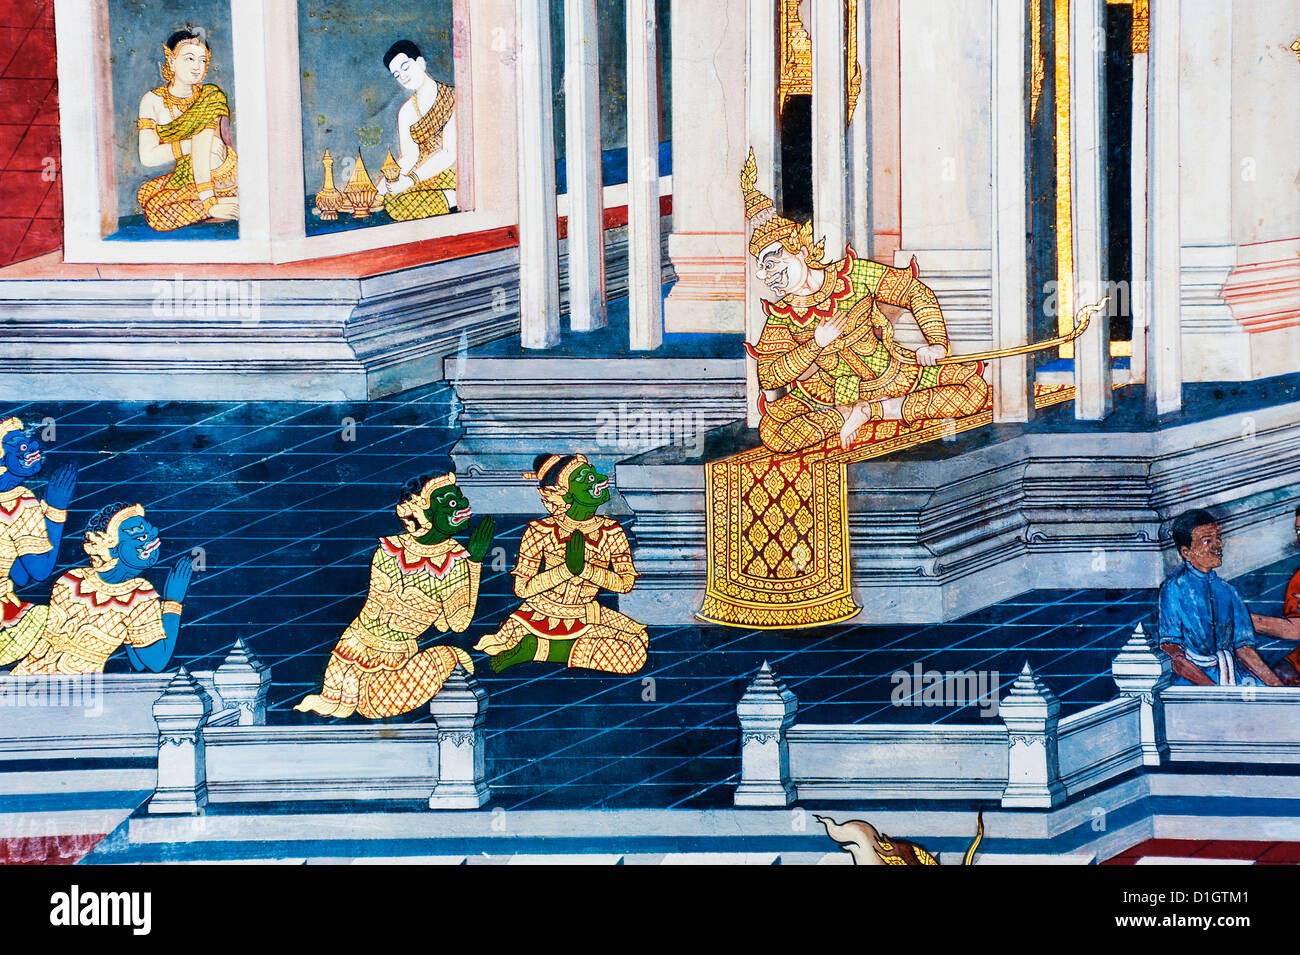 Detail of painting on the walls, The Grand Palace, Bangkok, Thailand, Southeast Asia, Asia - Stock Image